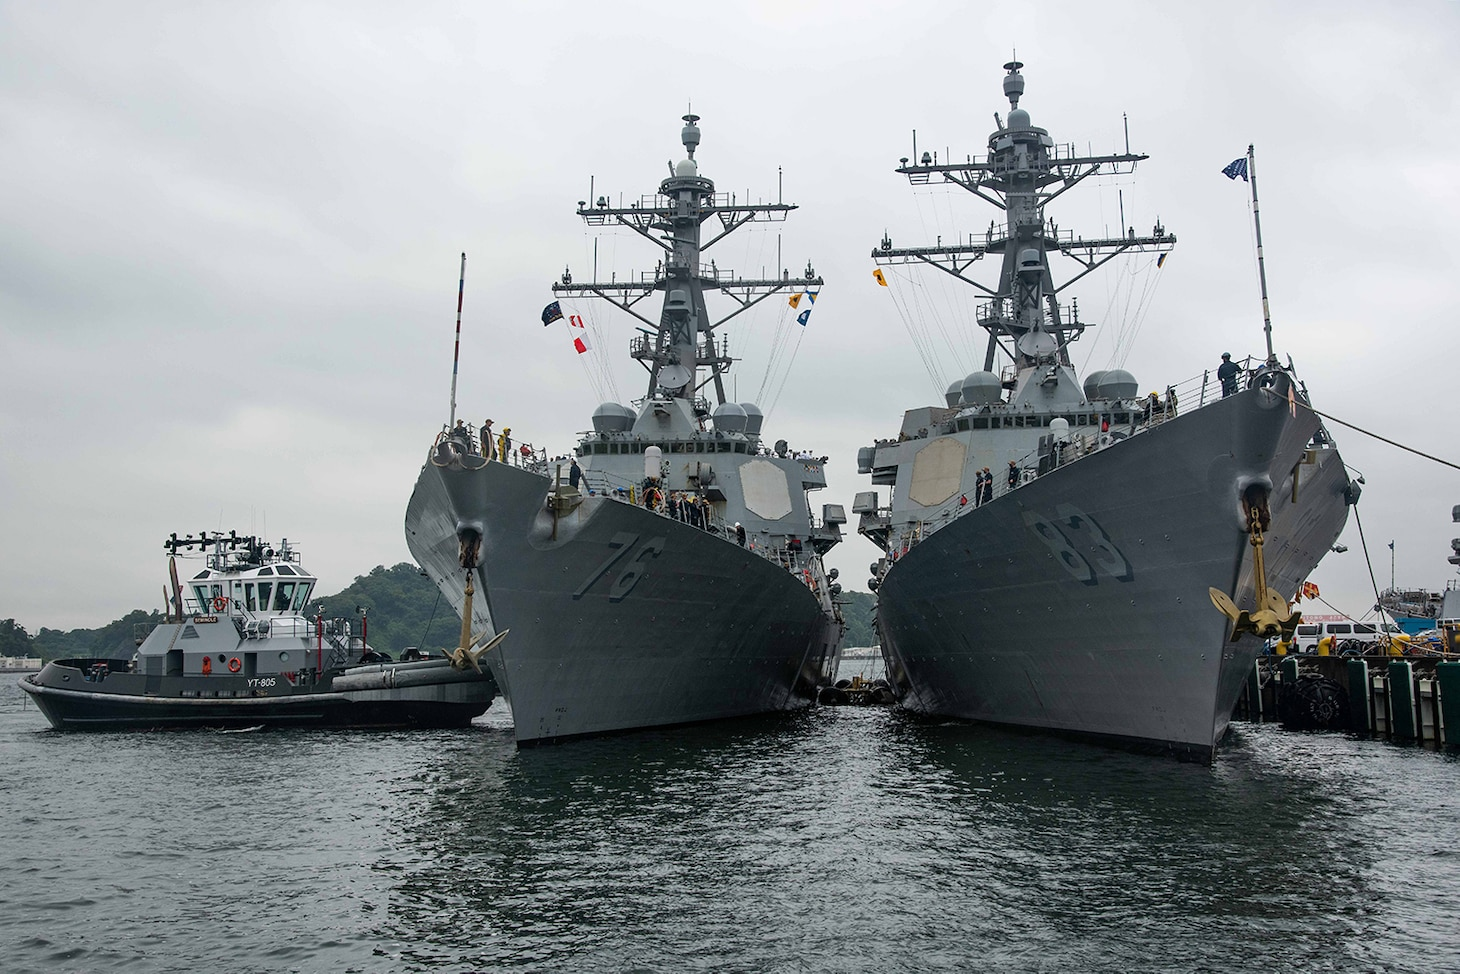 The Arleigh Burke-class guided-missile destroyer USS Higgins (DDG 76) arrives at Commander, Fleet Activities Yokosuka (CFAY), Japan Aug. 16 as one of the newest additions to Commander, Task Force (CTF) 71/Destroyer Squadron (DESRON) 15. Higgins is assigned to CTF 71/DESRON 15, the Navy's largest forward deployed DESRON and the U.S. 7th Fleet's principle surface force.